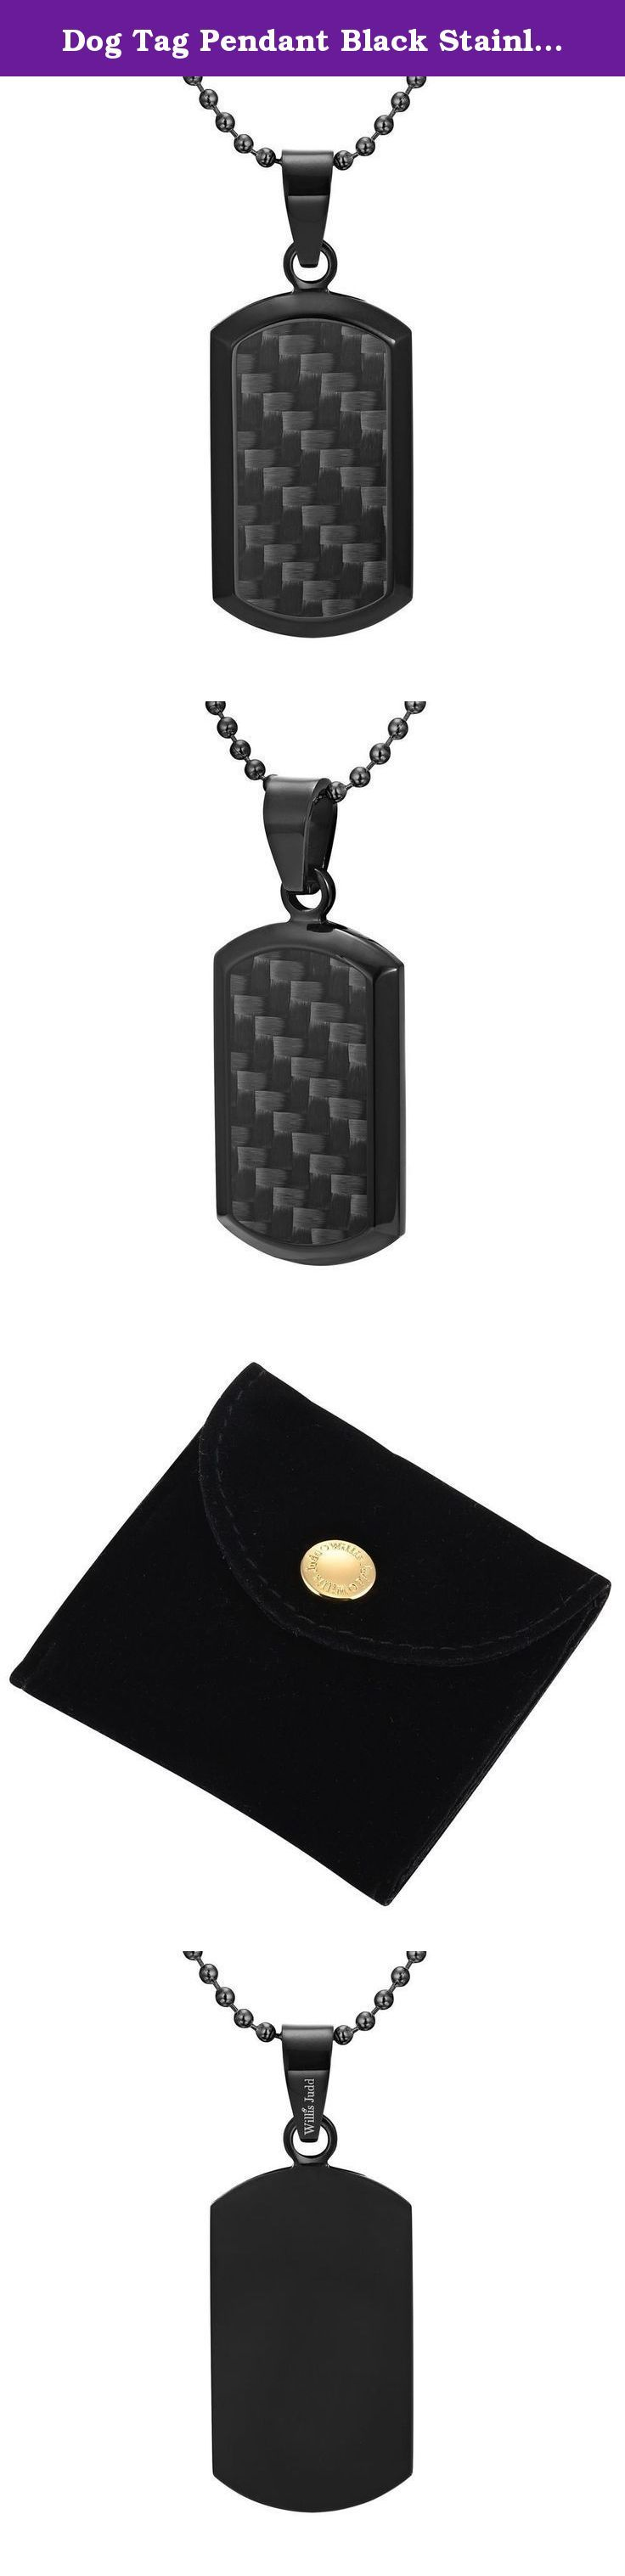 Dog Tag Pendant Black Stainless Steel and Black Carbon Fiber with Necklace & Gift Pouch By Willis Judd. From the Willis Judd Carbon collection is this black stainless steel pendant that features a carbon fiber inlay. As seen in the picture, the black stainless steel really complements the carbon fiber and creates an effect that will definitely stand out in a crowd and make ones outfit complete. What's more is that it is complete with a stainless steel ball chain - so it's ready to wear! -...